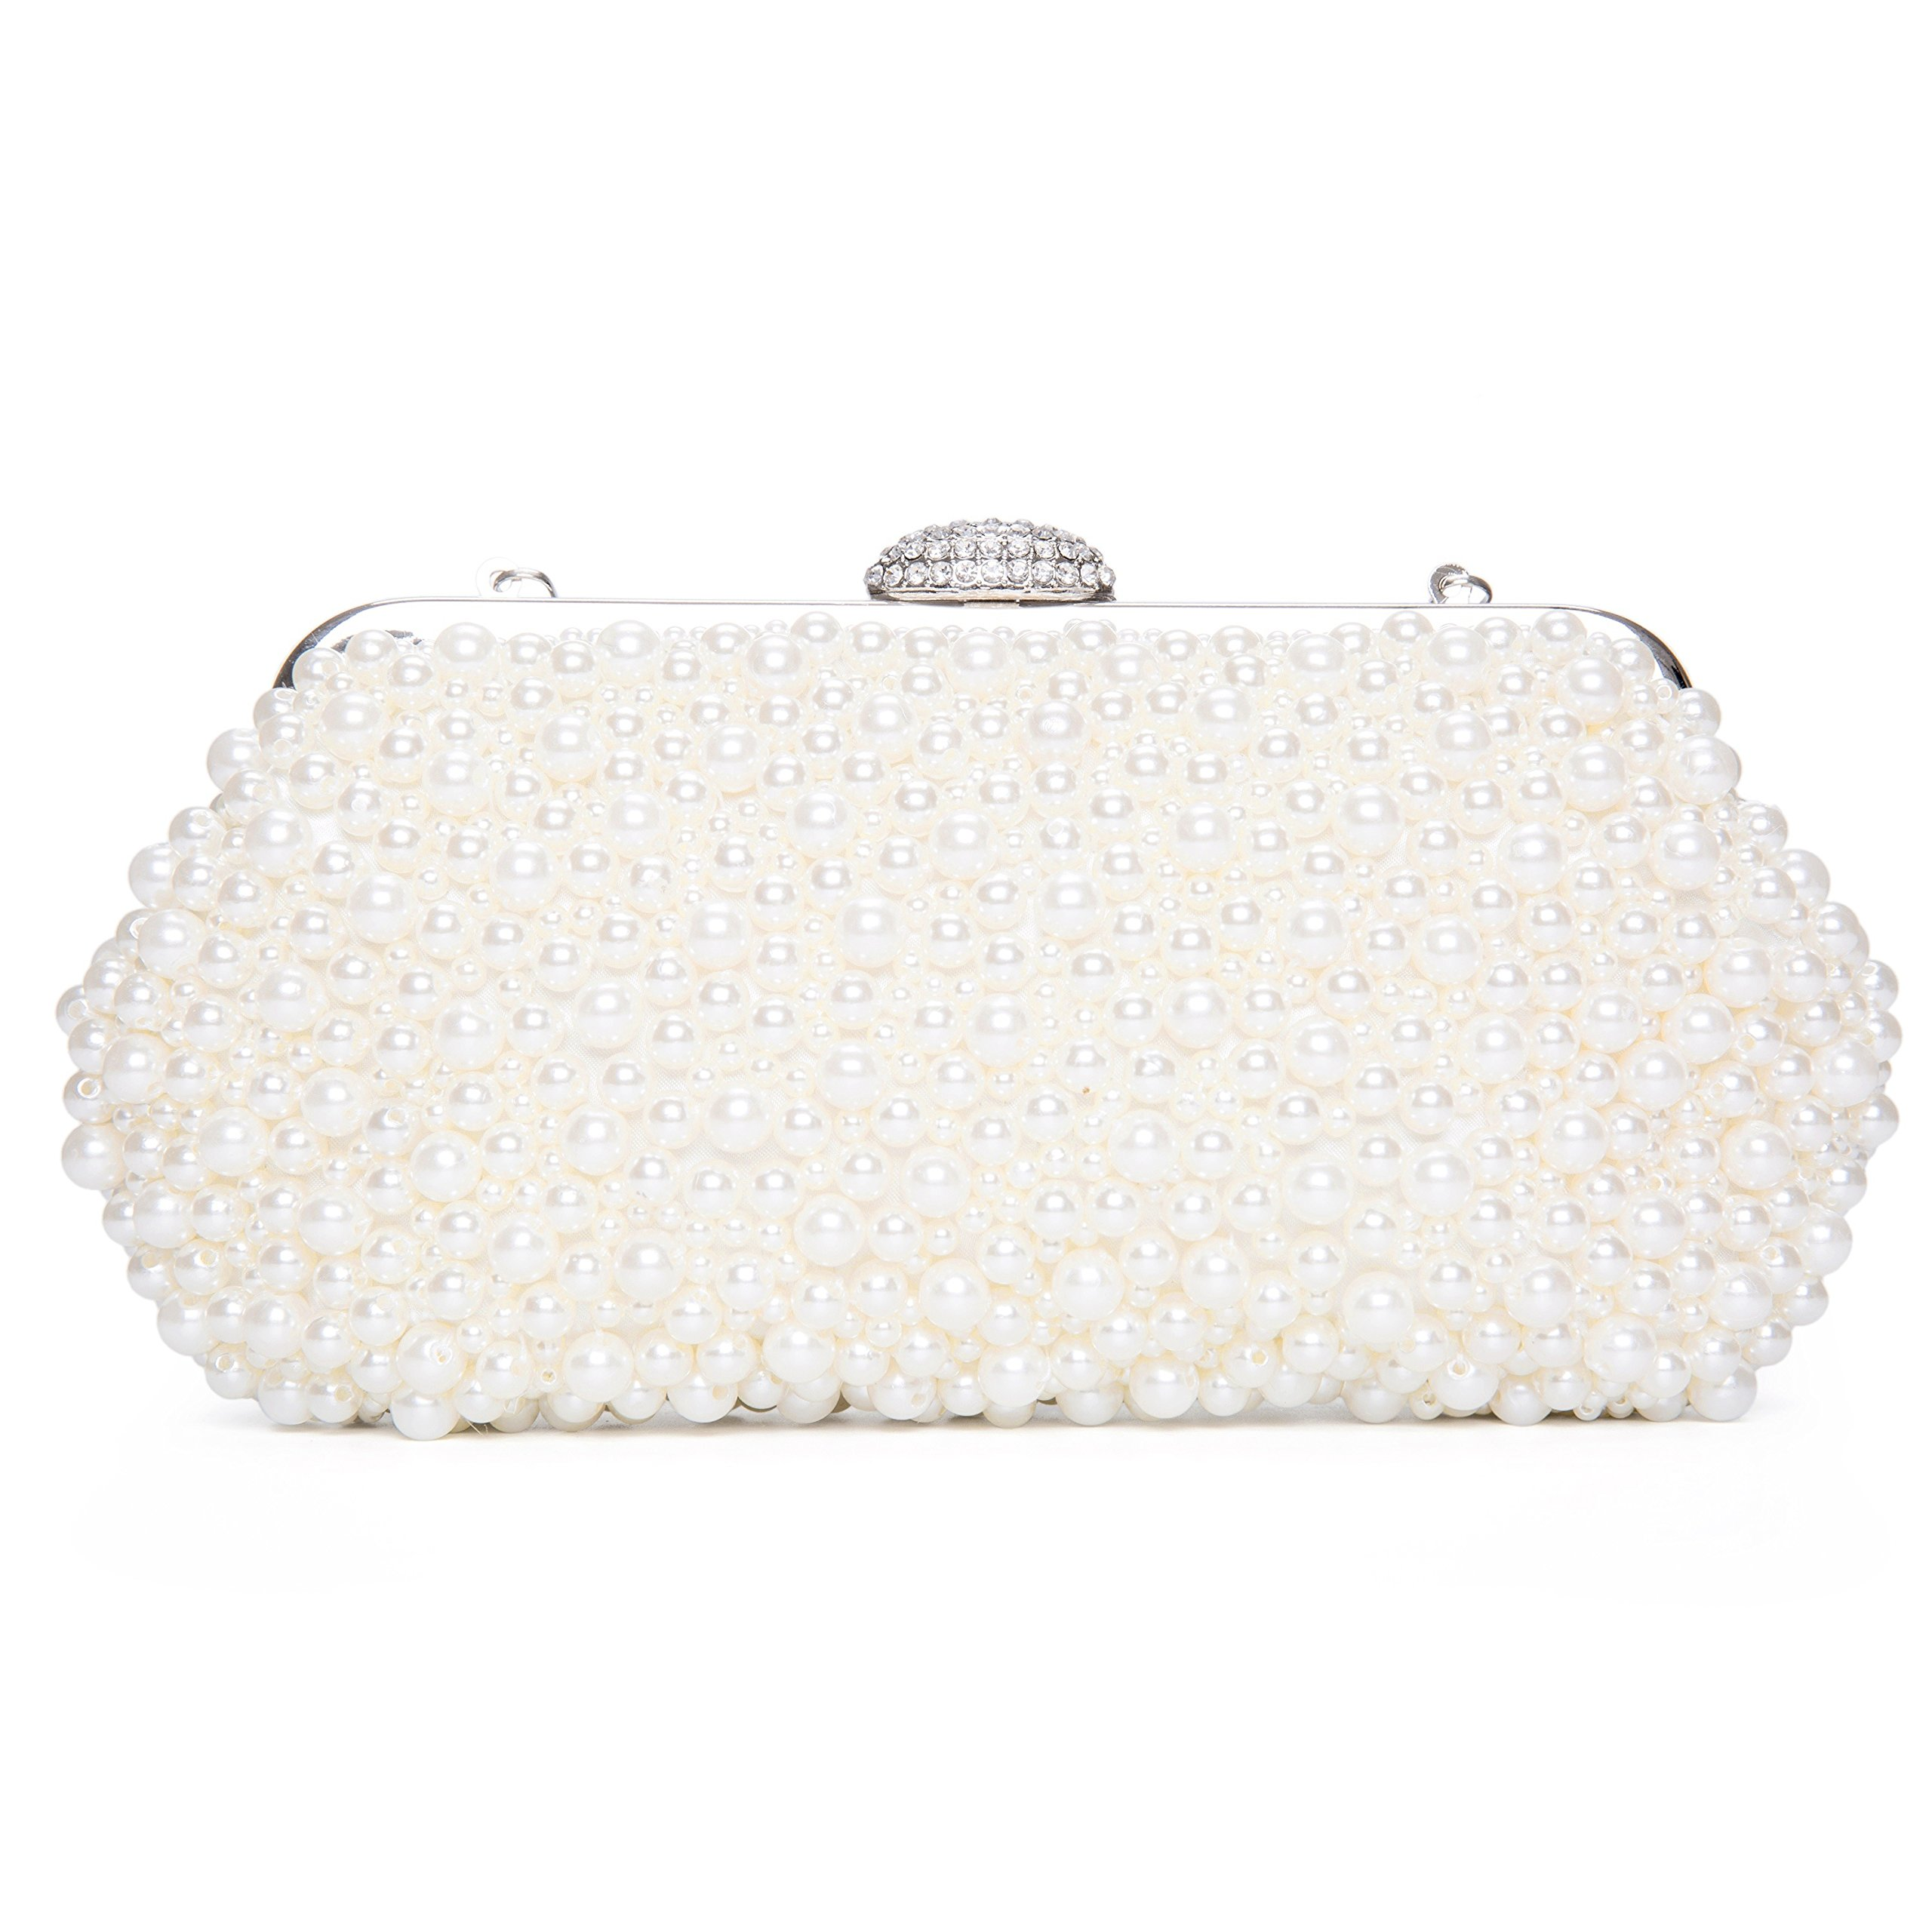 Kisschic Women Faux Pearl Bead Rhinestone Evening Clutch Clutches Bag Handbag Pearl Evening bags (Beige)